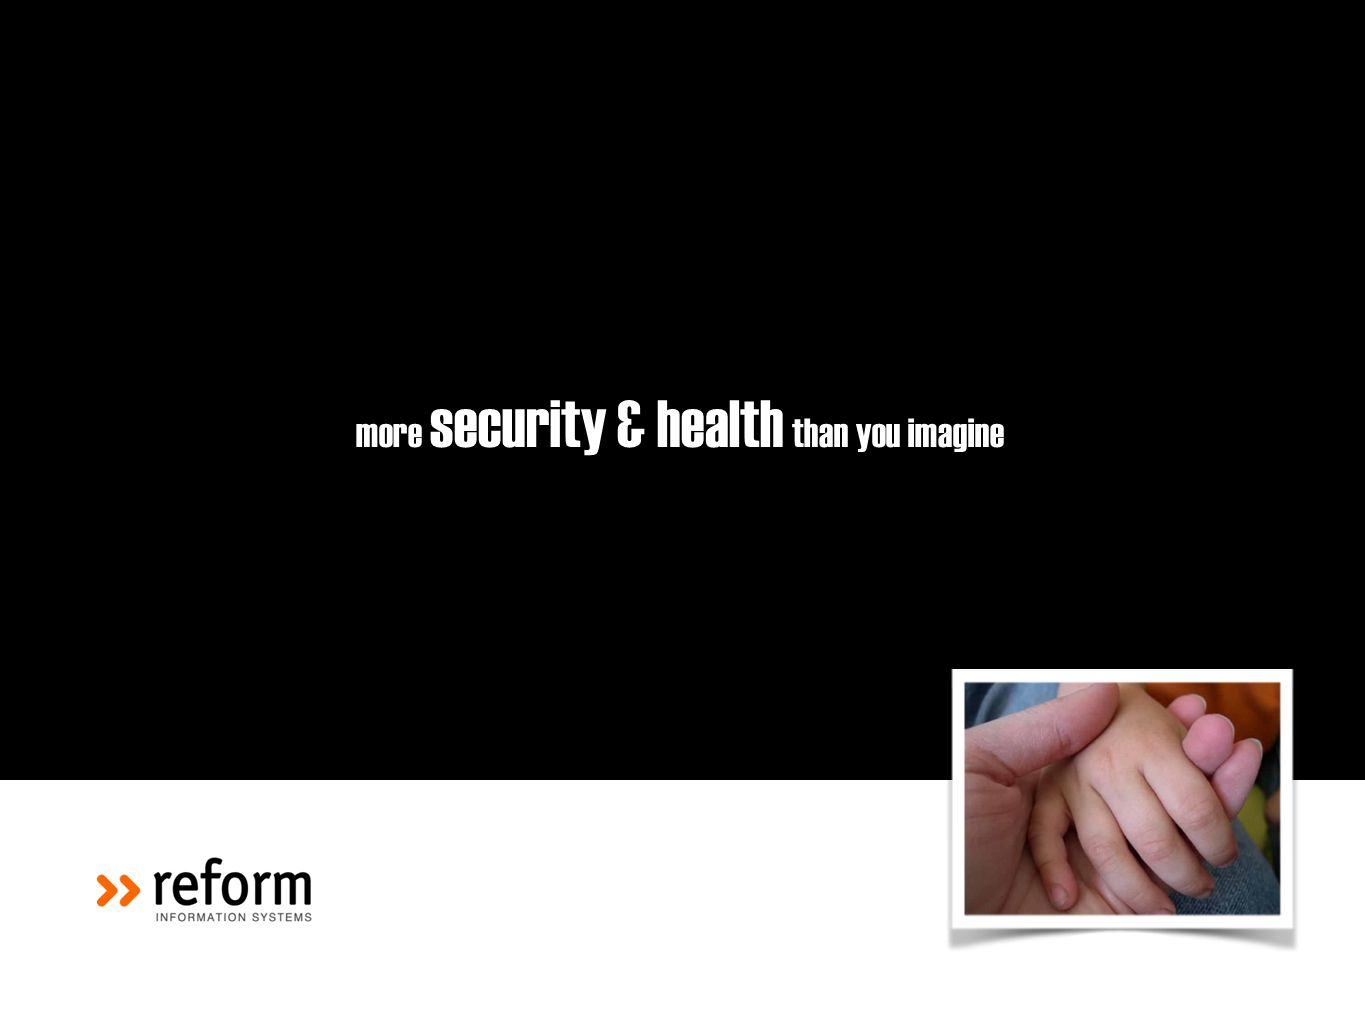 more security & health than you imagine